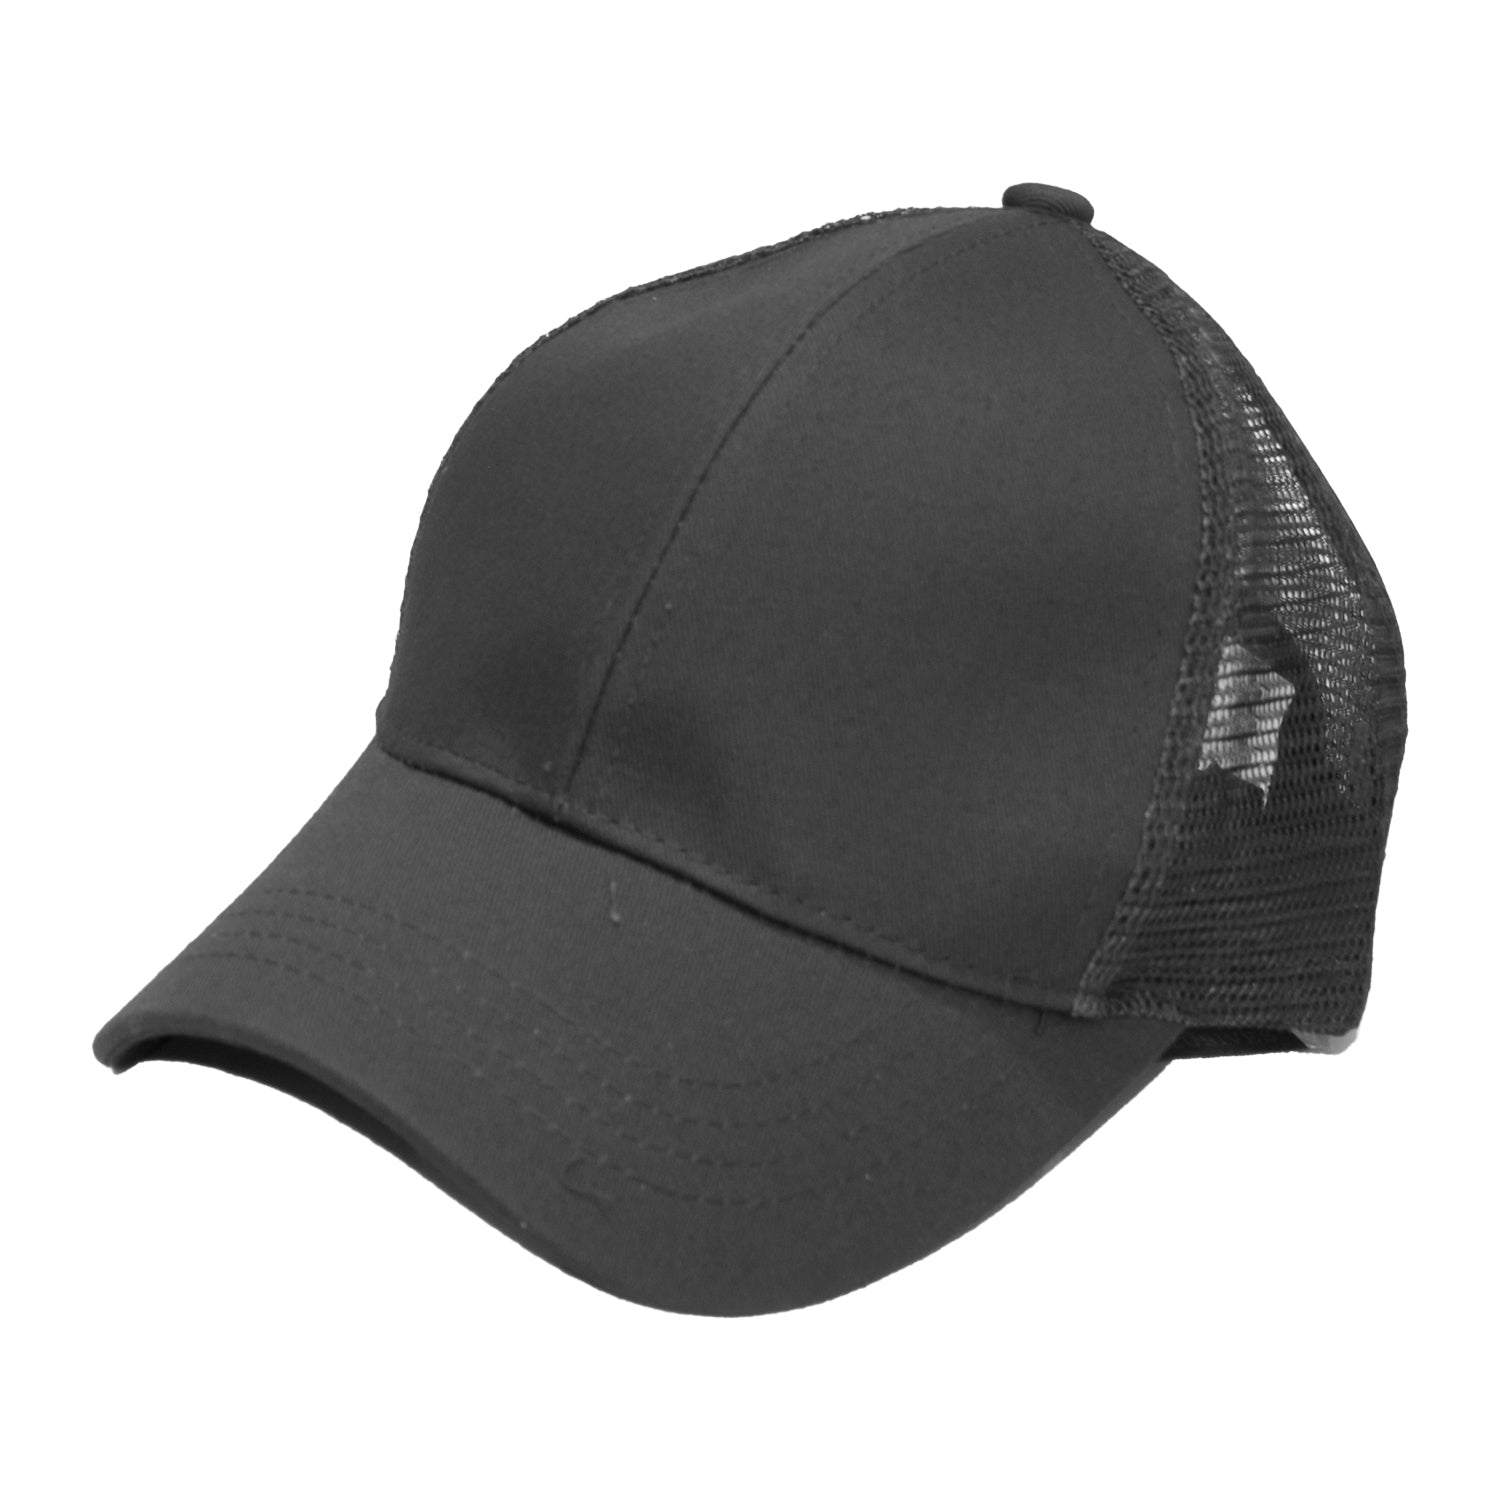 B-4 C.C Pony Caps Charcoal Grey